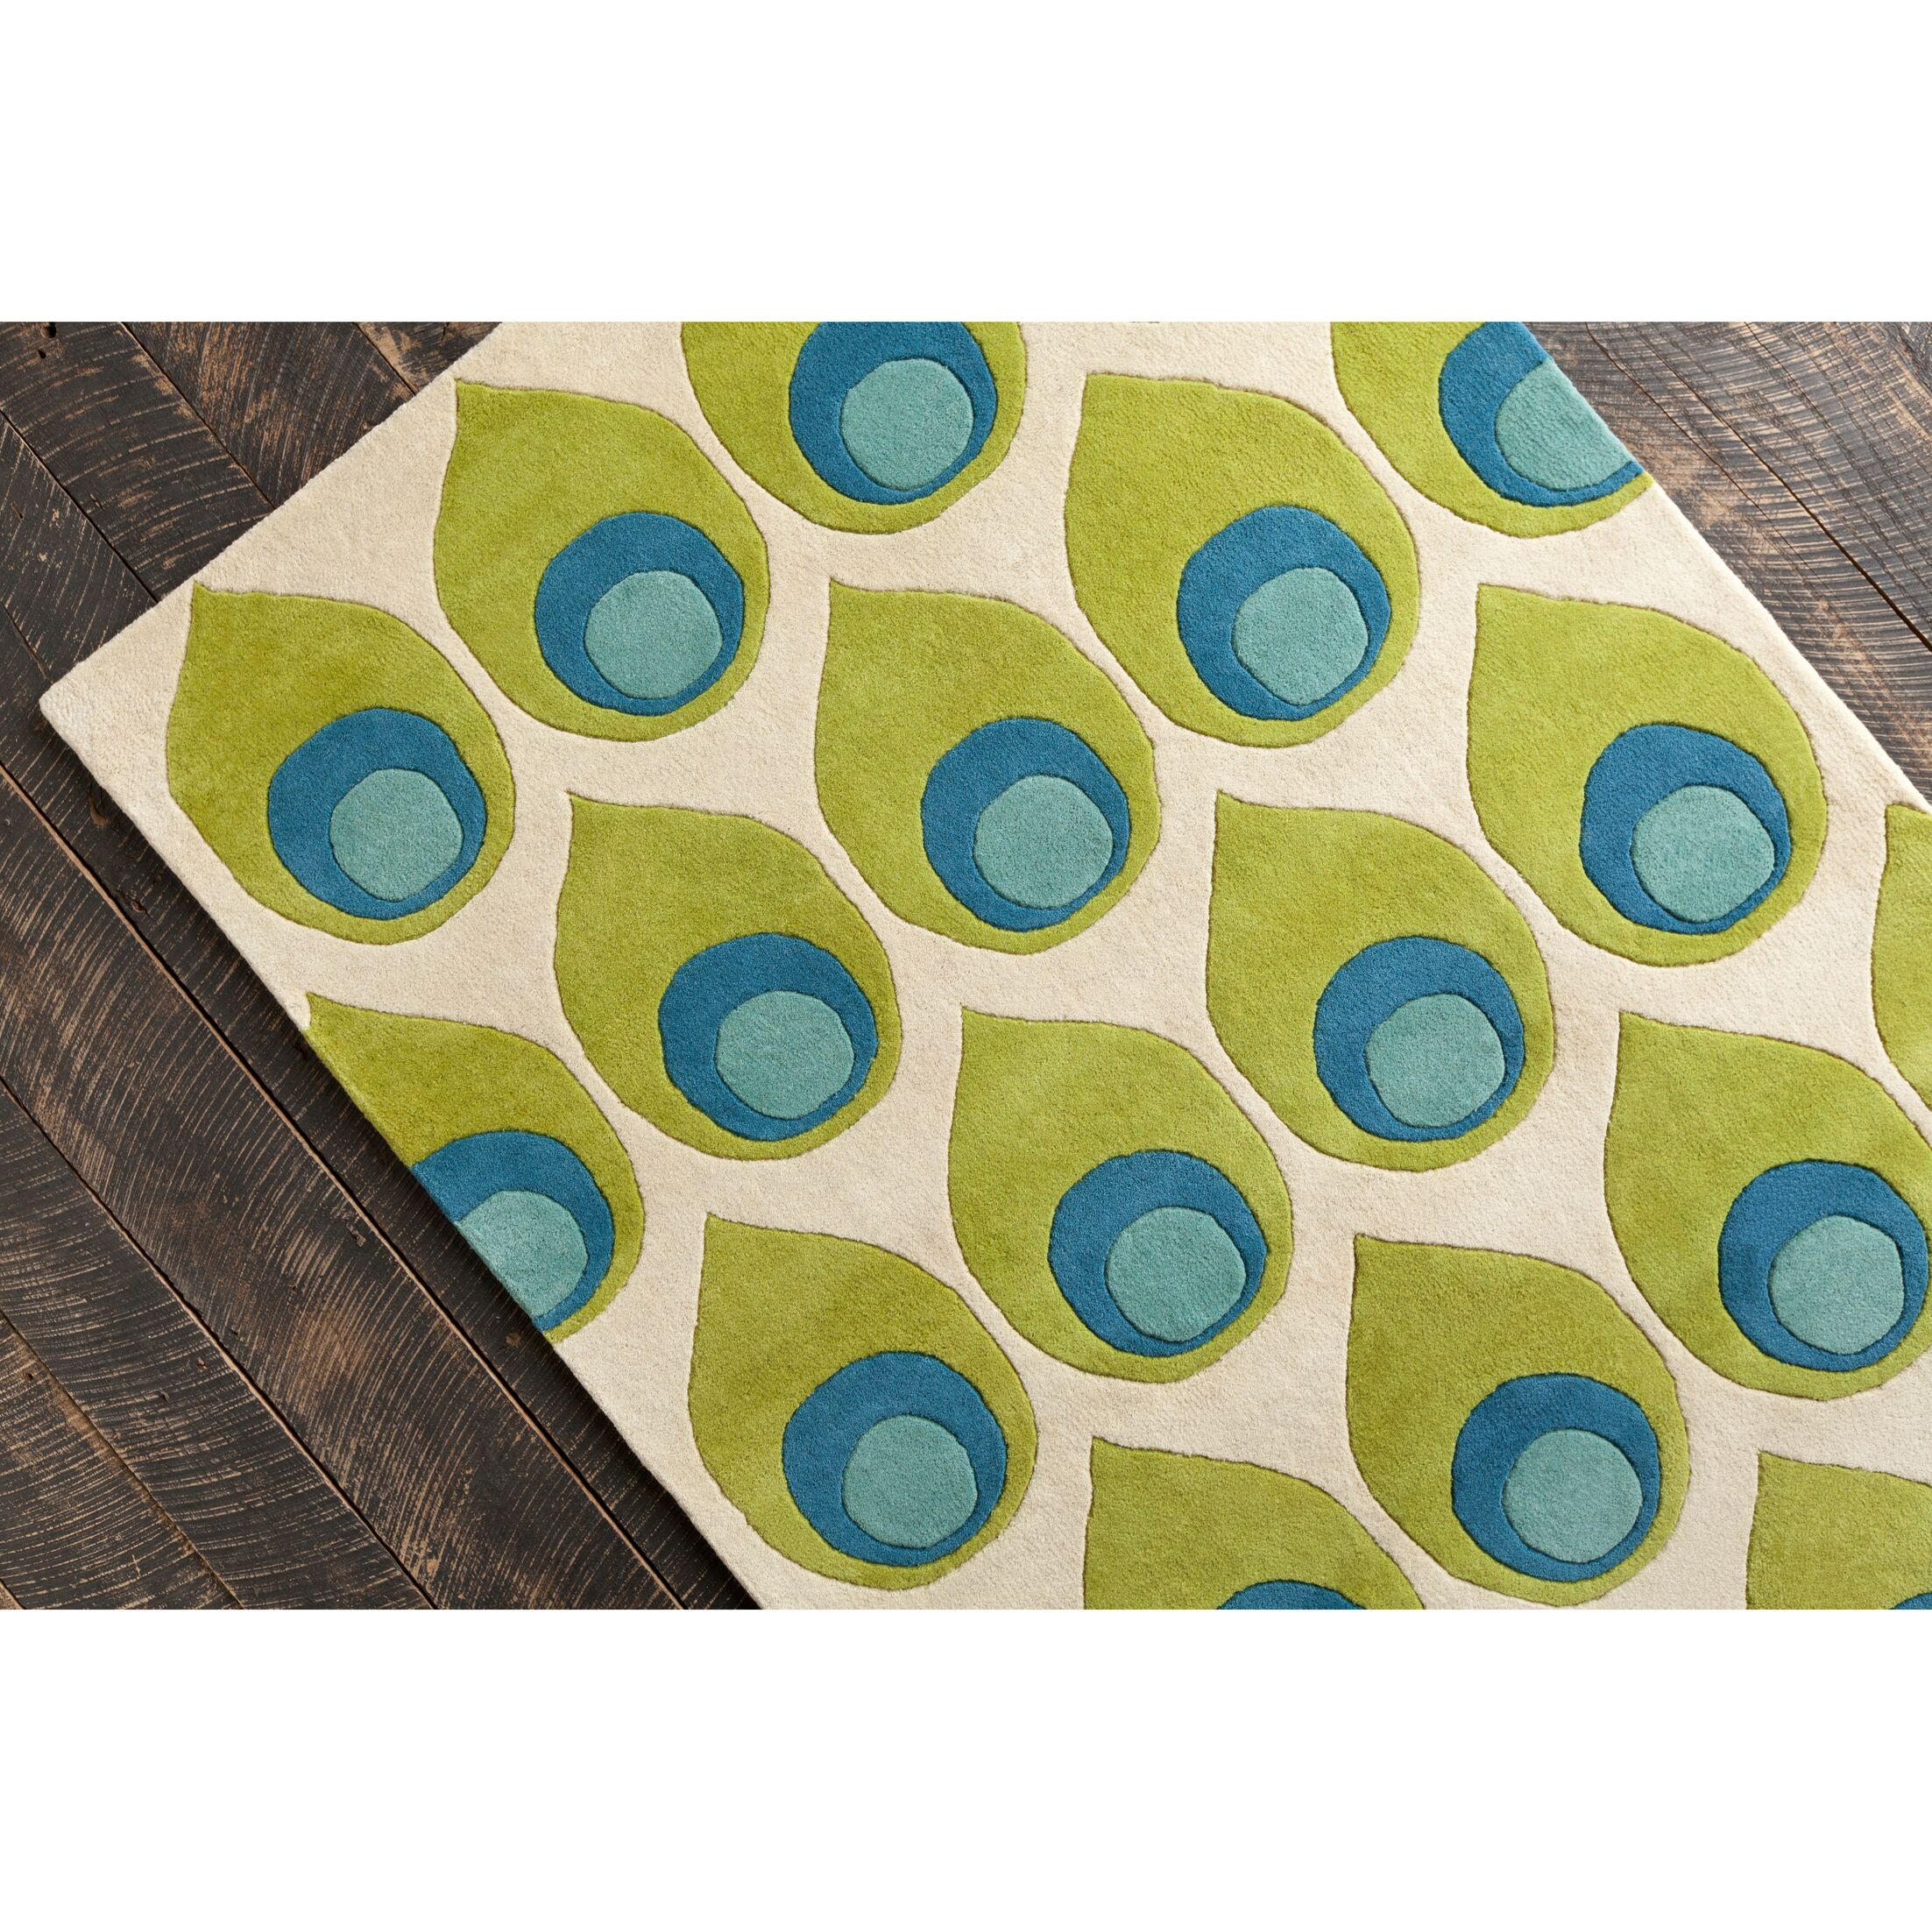 Willa Hand Tufted Wool Green/Blue Area Rug Rug Size: 5' x 7'6